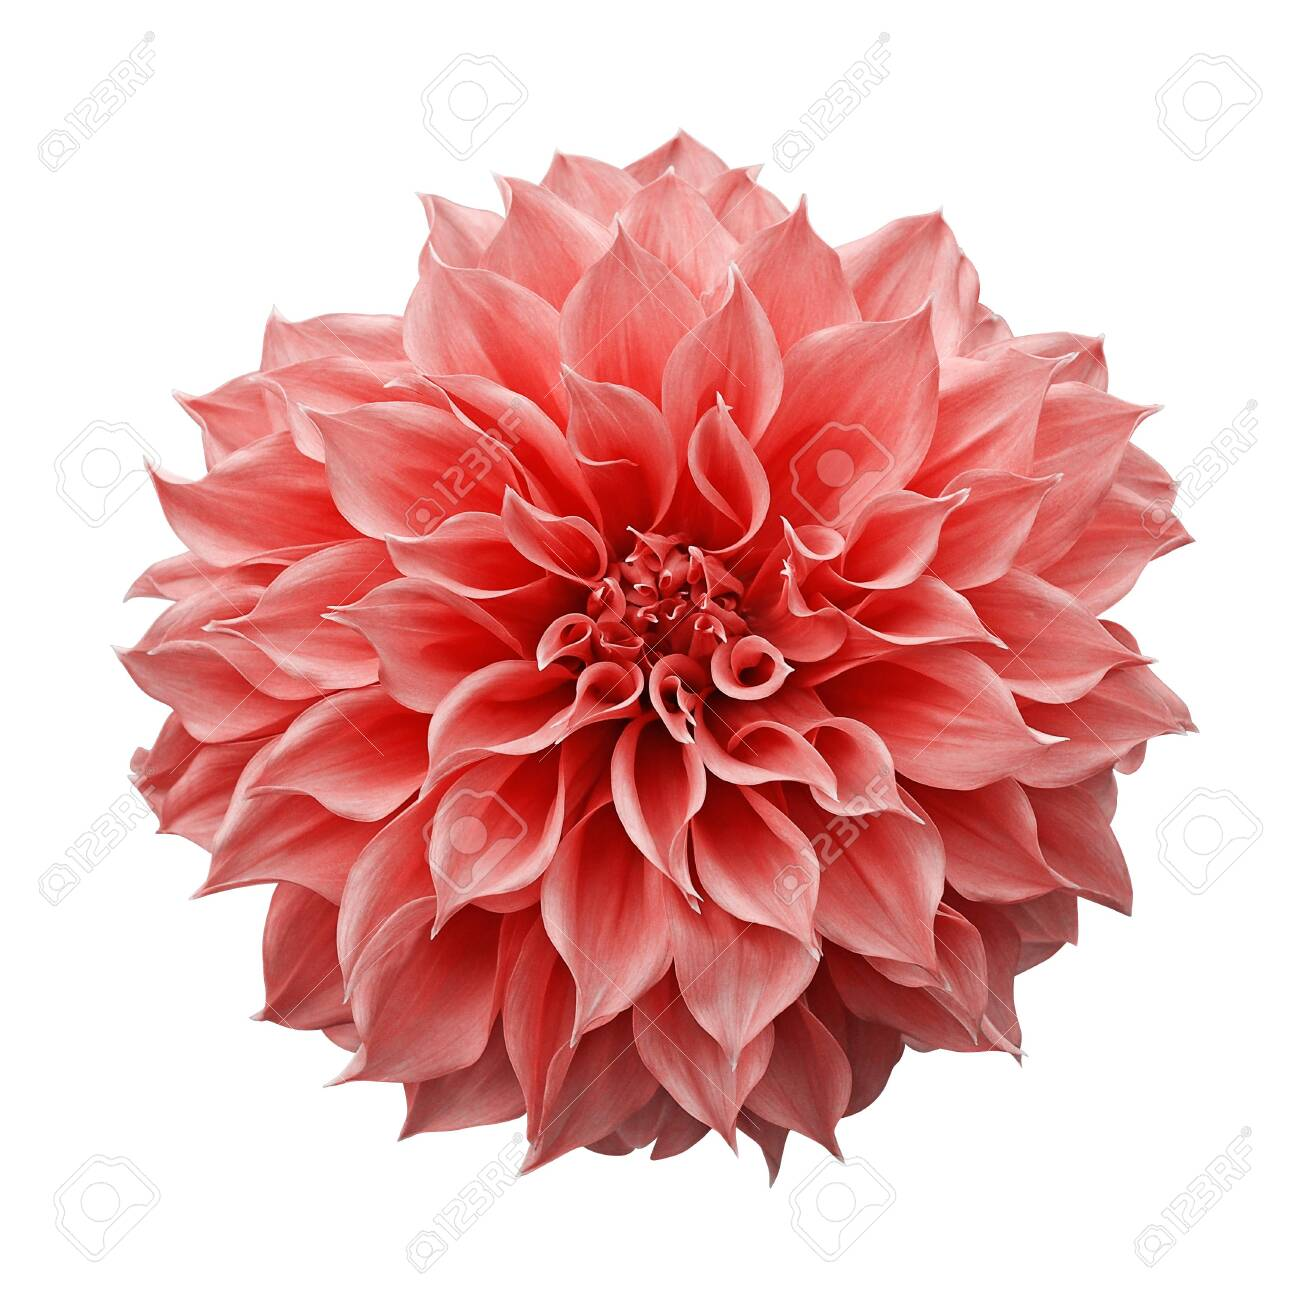 Trendy Pink Orange Or Coral Colored Dahlia Flower The Tuberous Stock Photo Picture And Royalty Free Image Image 130160570